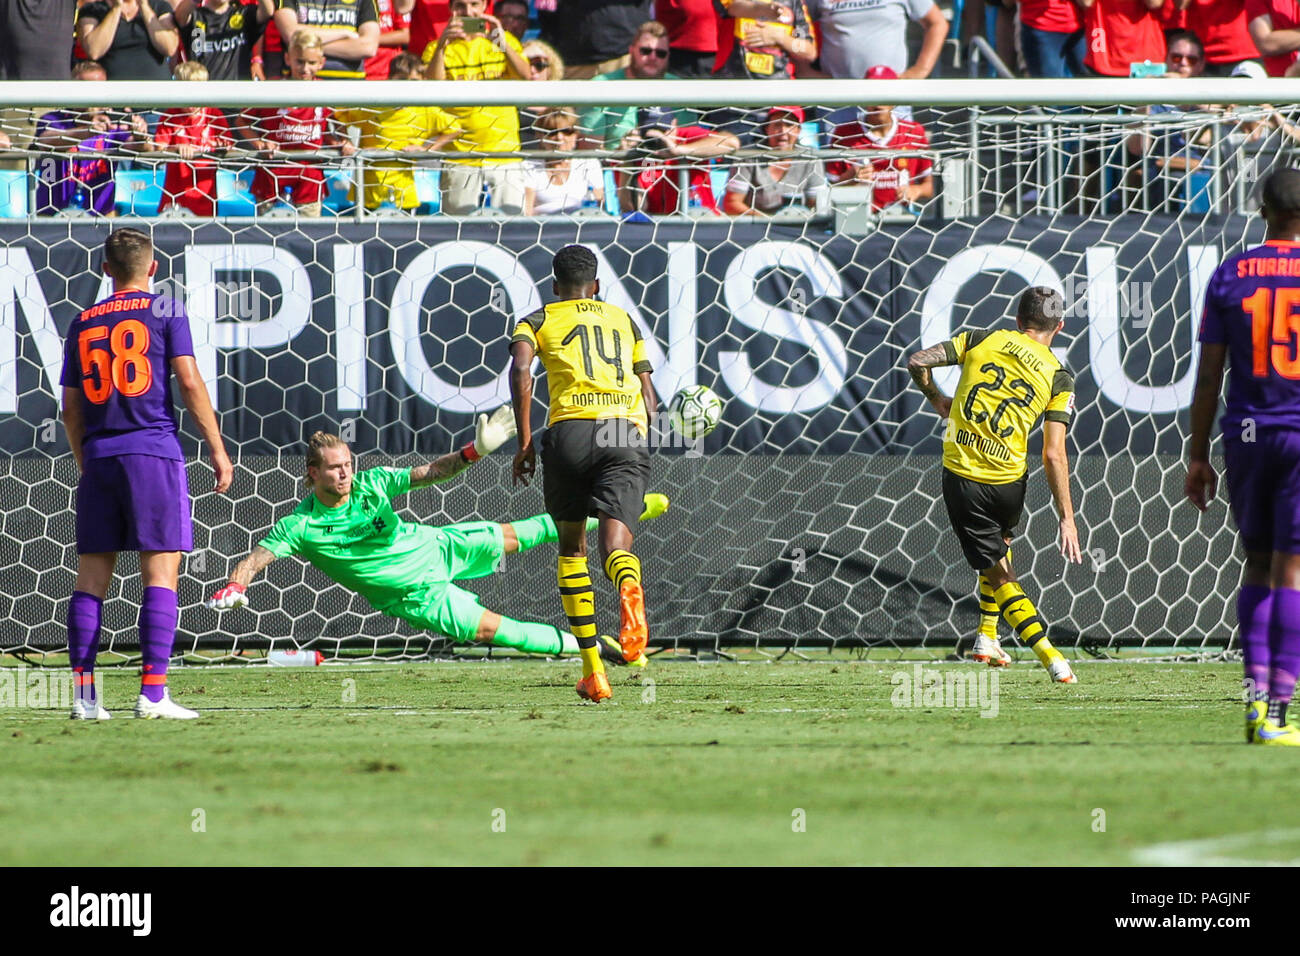 Charlotte, NC, USA. 22nd July, 2018. Borussia Dortmund midfielder Christian Pulisic (22) scores off a penalty kick in the second half during International Champions Cup action between the Liverpool FC vs Borussia Dortmund in Charlotte, NC. Jonathan Huff/CSM/Alamy Live News - Stock Image